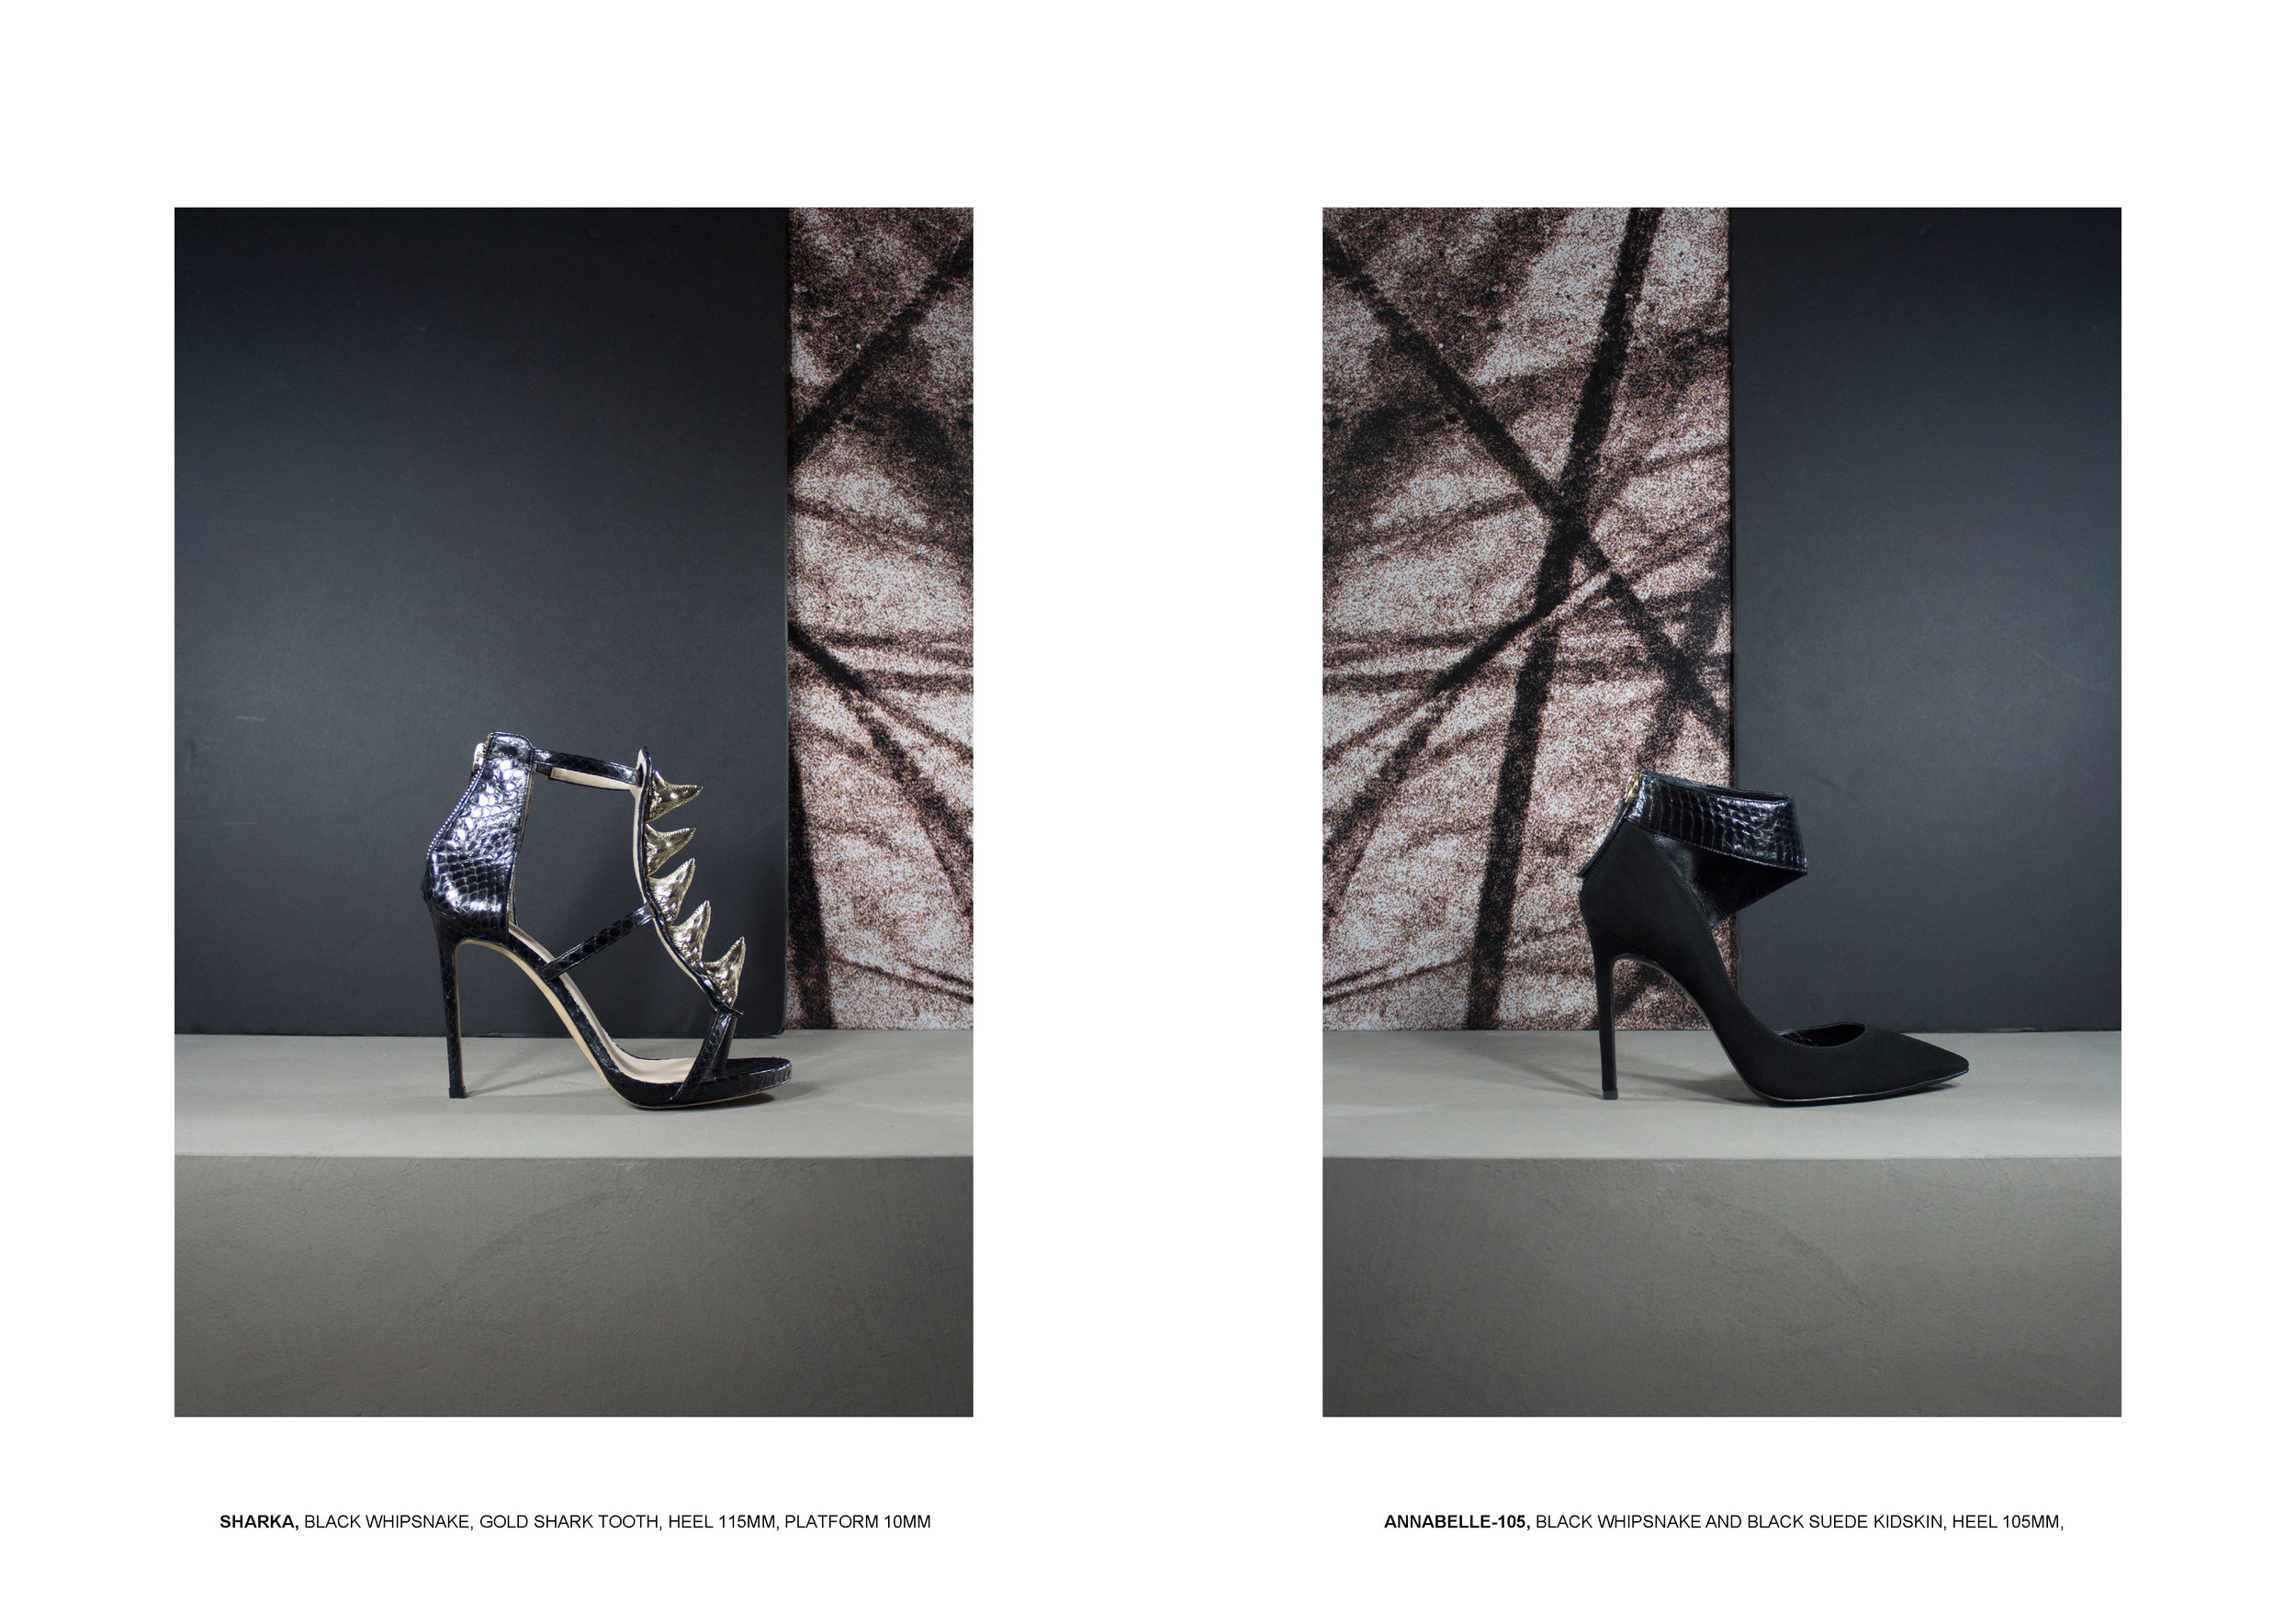 eugenericonneaus_main-aw15-16-high-w_Page_29.jpg